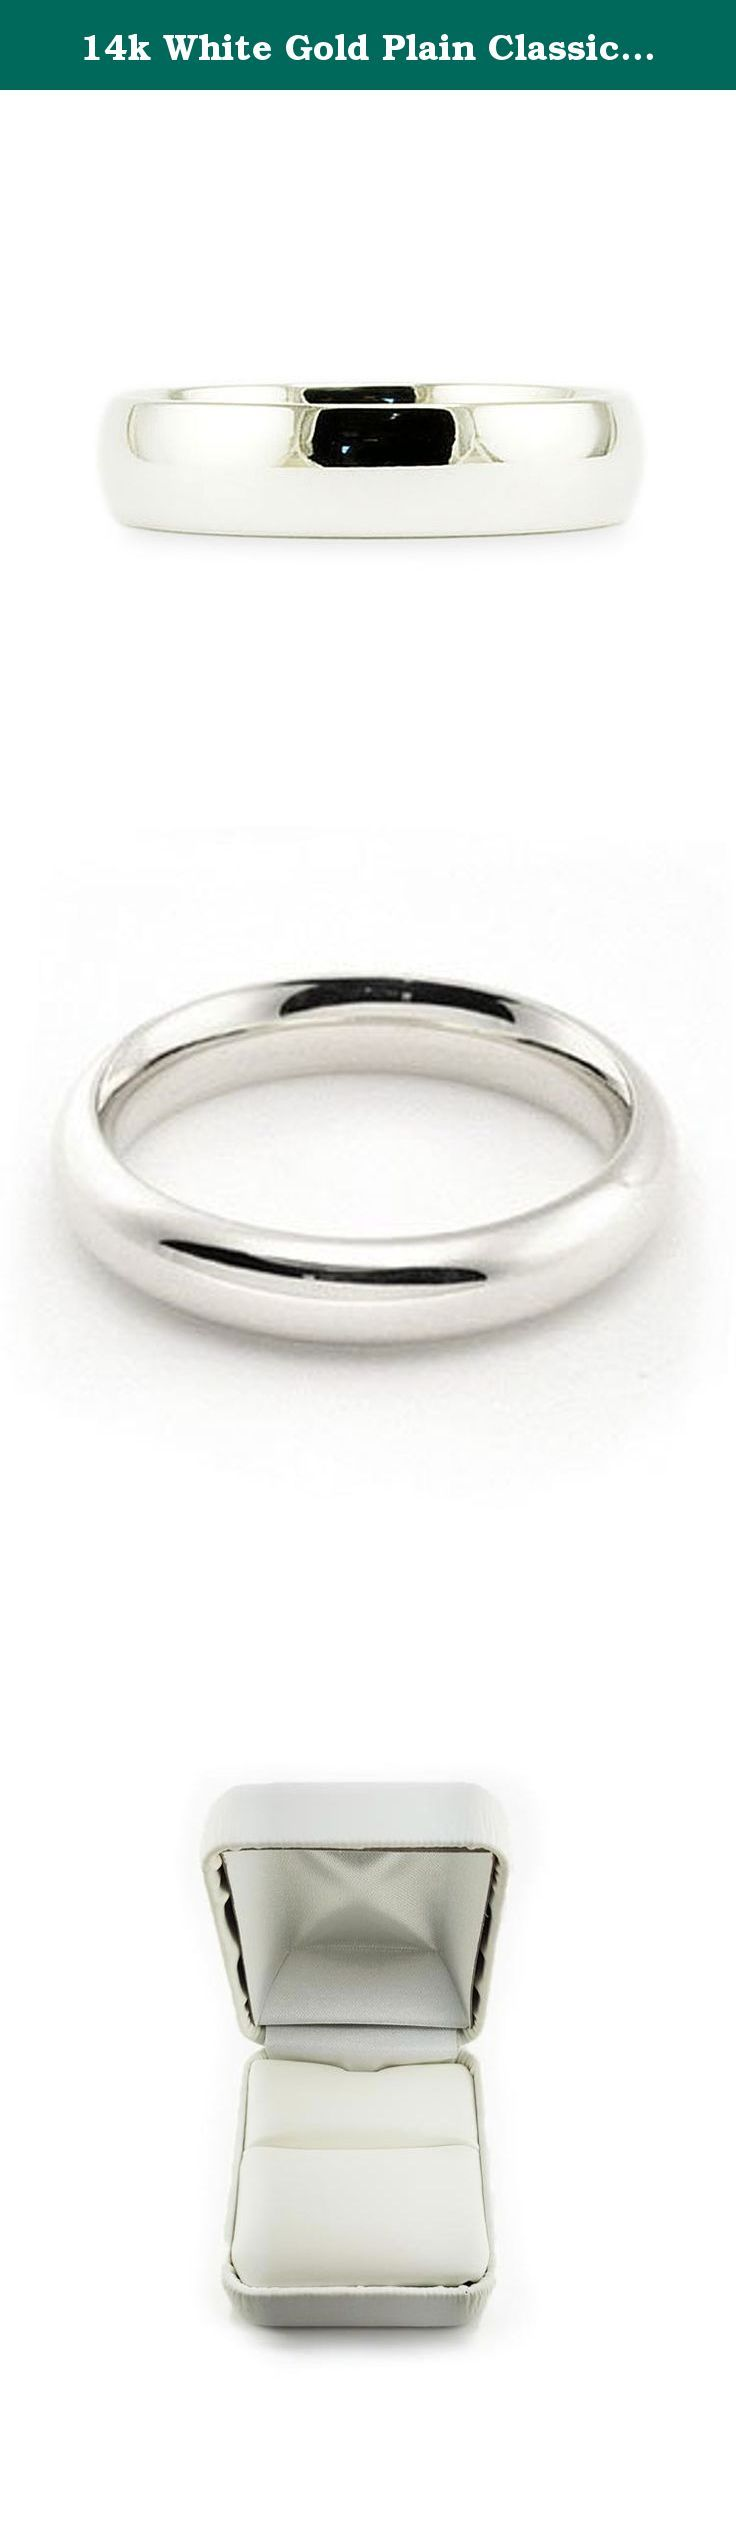 14k White Gold Plain Classic 4mm COMFORT FIT WEDDING BAND size 6.75. This beautiful classic band has a slightly rounded body, bright finish and is comfort fit. The comfort fit design features a rounded polished interior that allows the ring to slide easily and rest comfortably on the finger. Caring For Your Jewelry To keep your jewelry shining and scratch-free, avoid contact with harsh chemicals and chlorine. To clean gold jewelry, use warm water and a mild soap. We do not suggest using a...